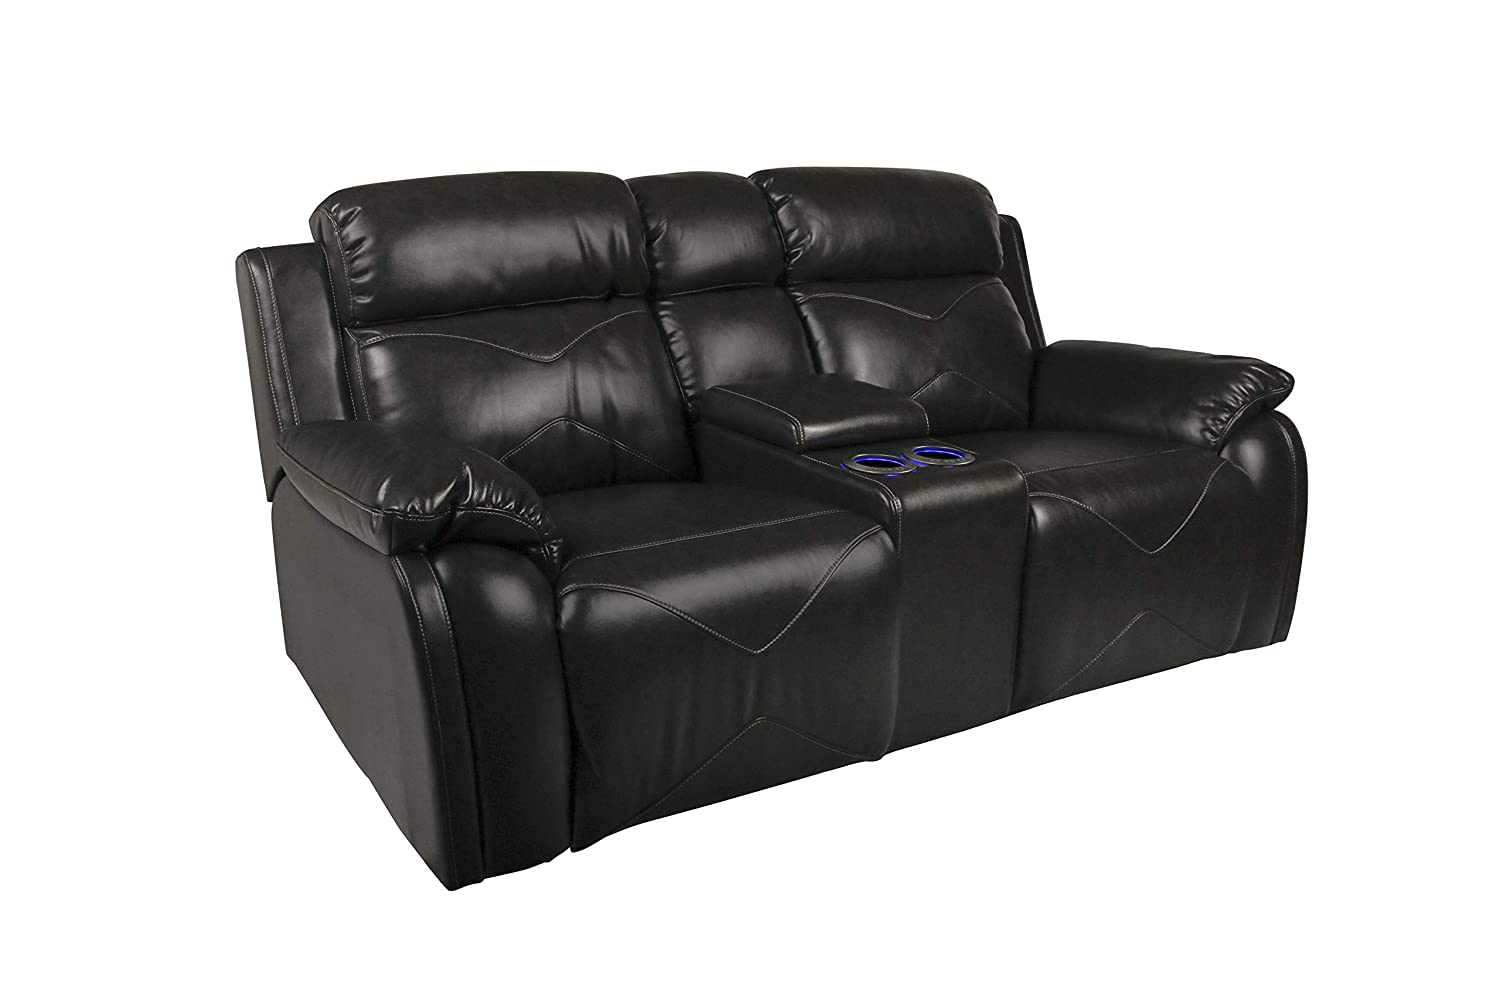 New Classic Furniture 22-2320-25PH-EBY Vigo Loveseat, Power, Ebony